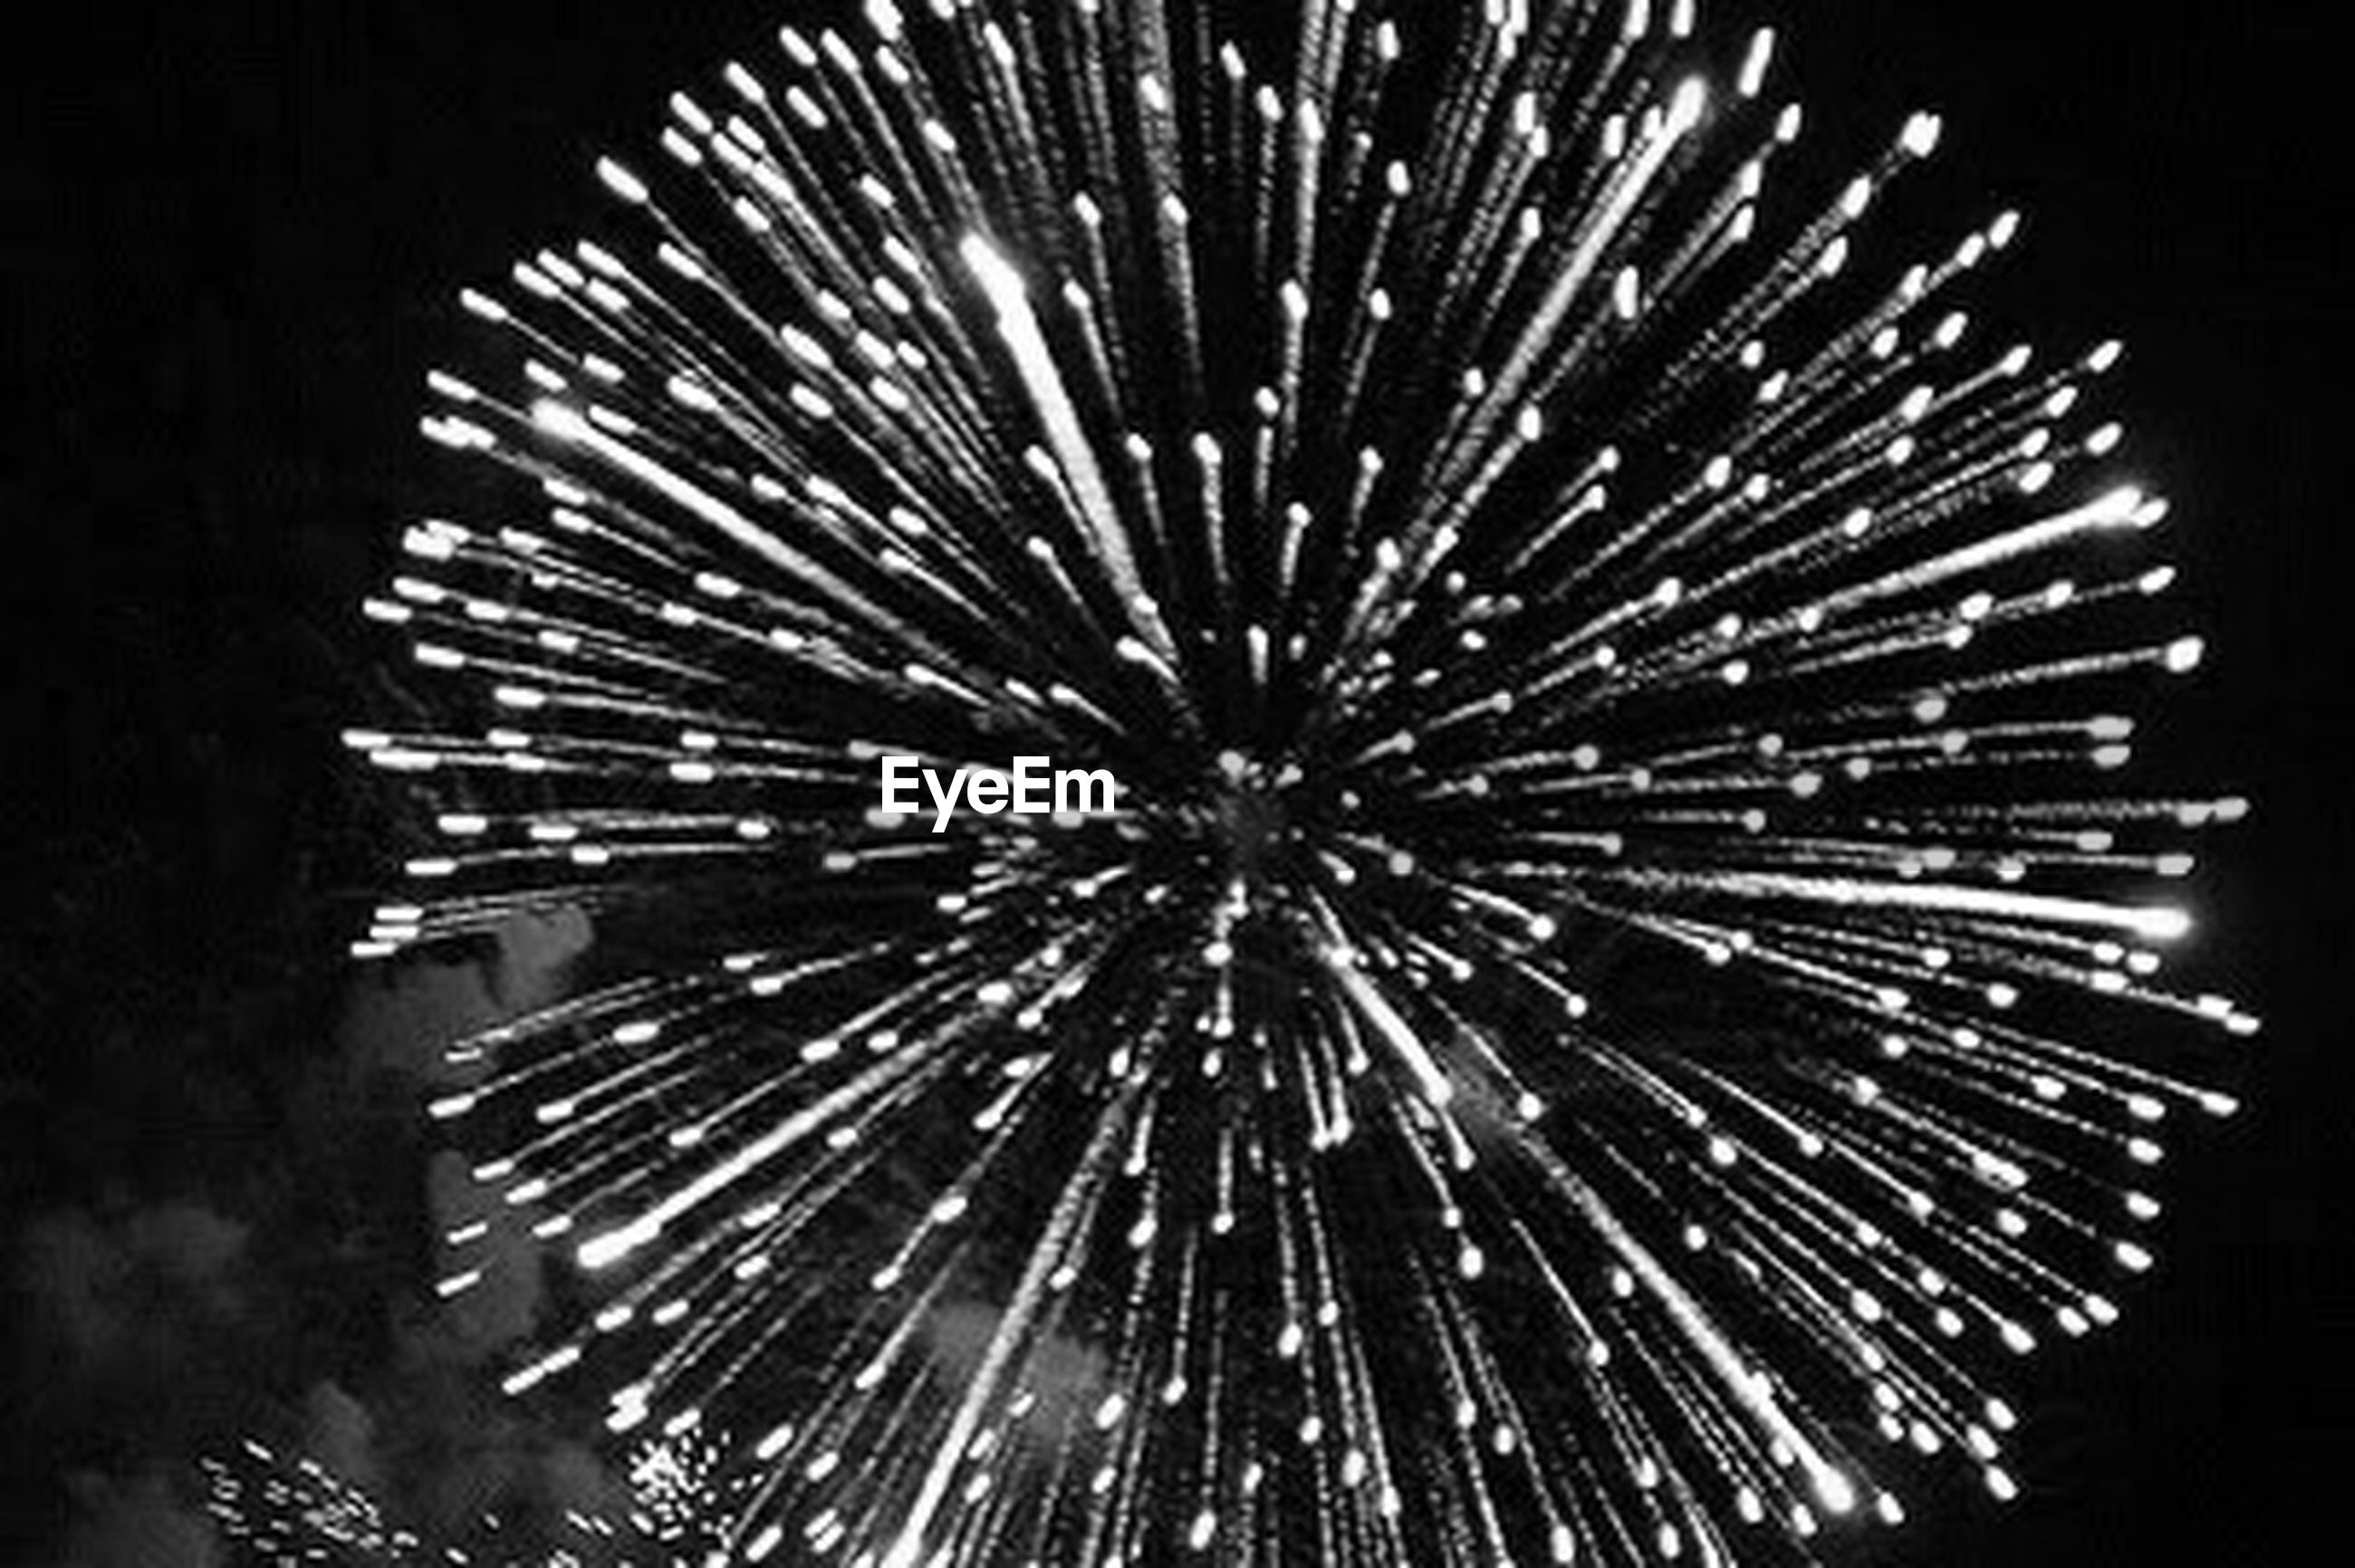 celebration, firework display, night, exploding, firework - man made object, arts culture and entertainment, event, low angle view, long exposure, blurred motion, illuminated, no people, outdoors, sky, black background